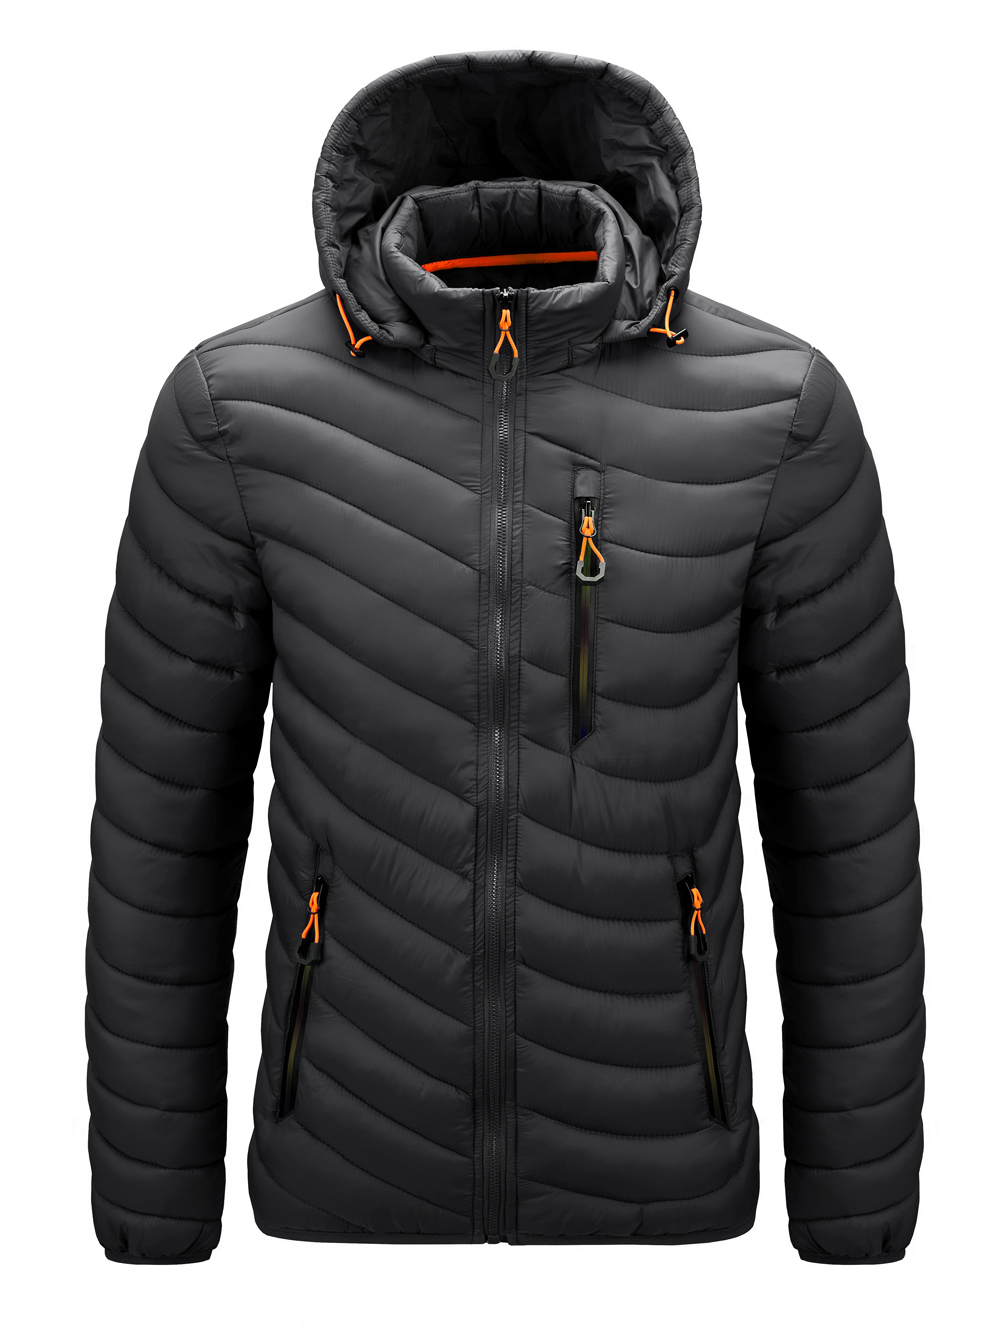 Winter Cotton-padde Plain Colors Outdoor Cold Season Down Jackets Hooded For Men